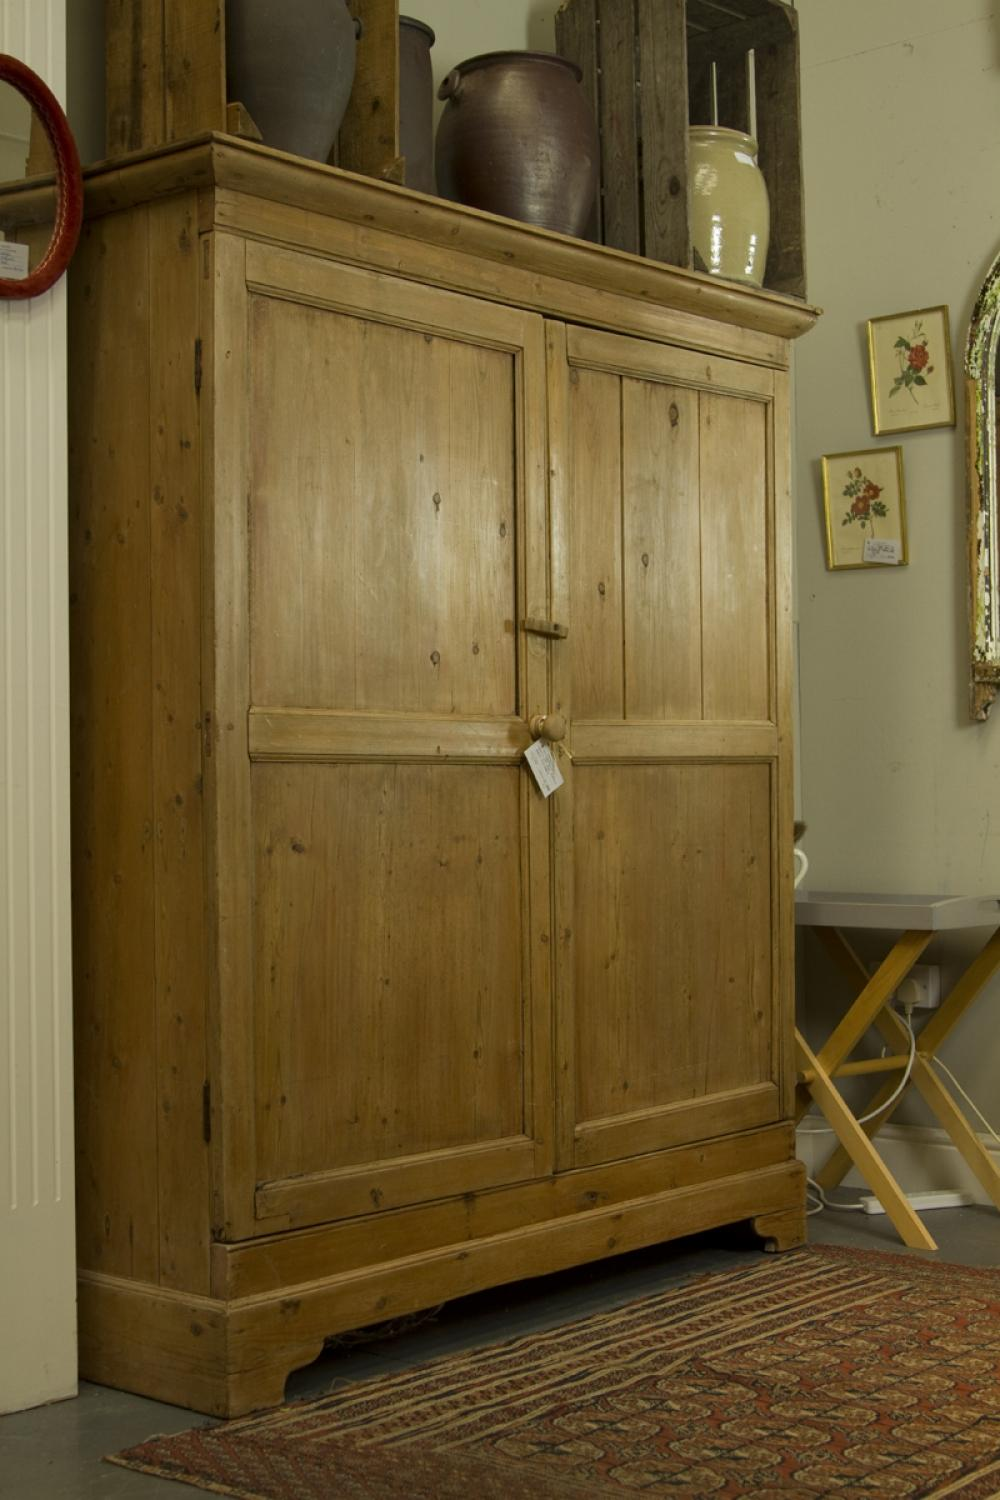 Antique Pine Larder Cupboard - Antique Pine Larder Cupboard In Furniture